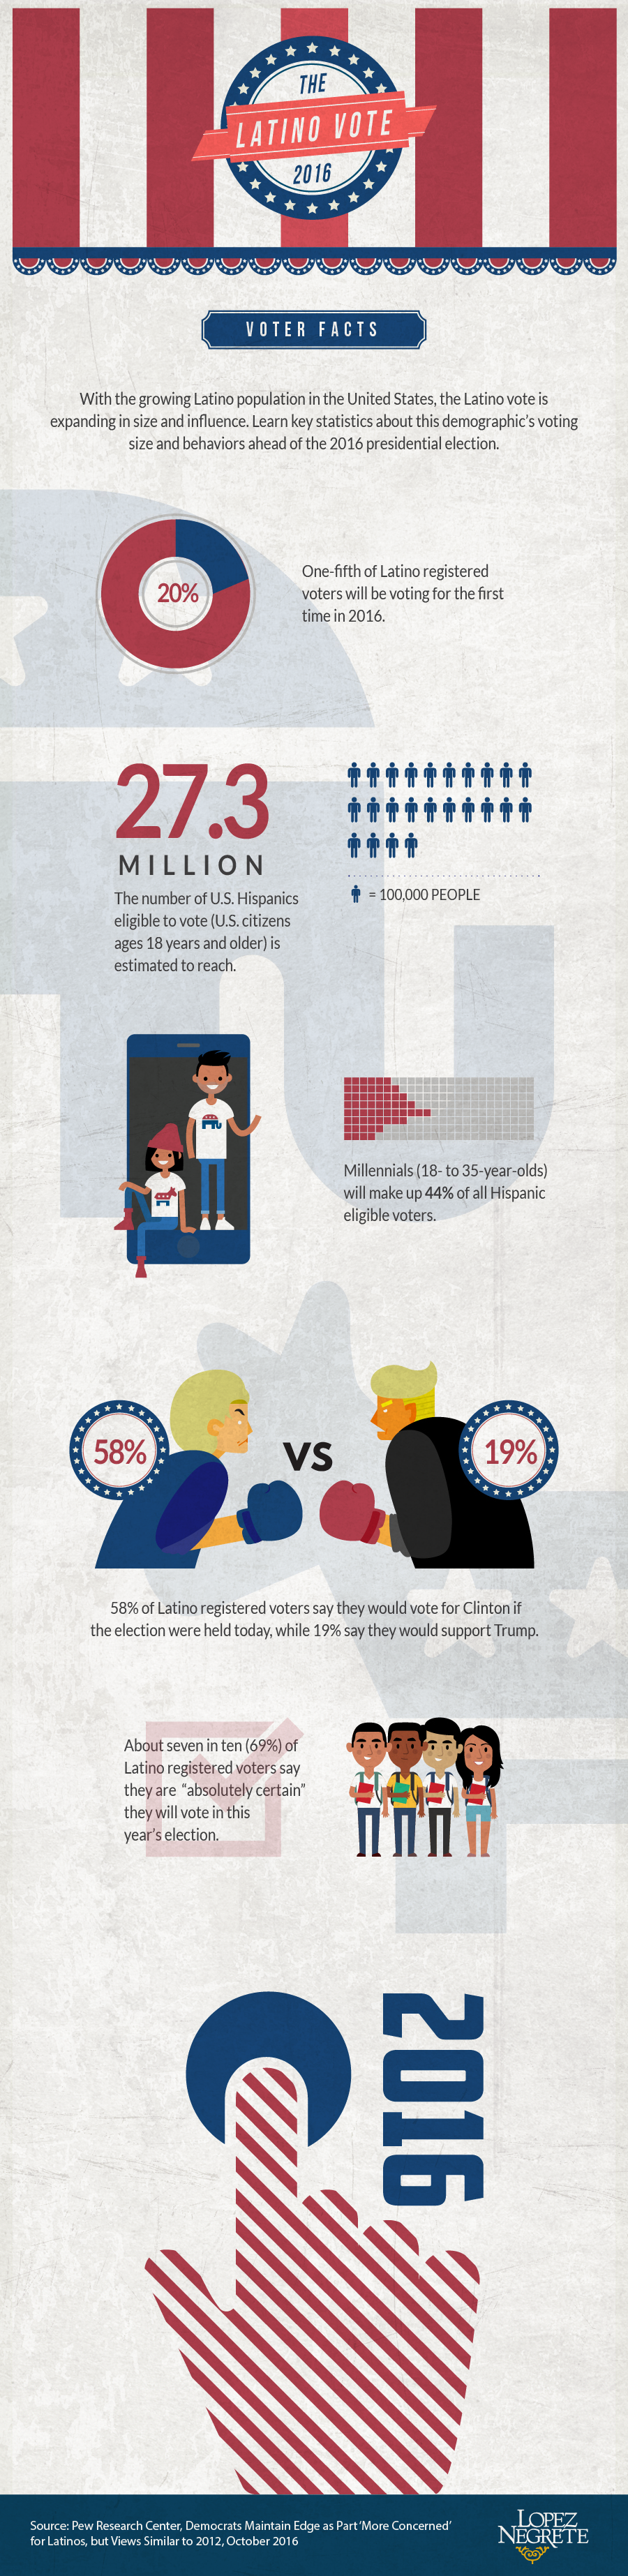 latinovote_infographic_lnc_final